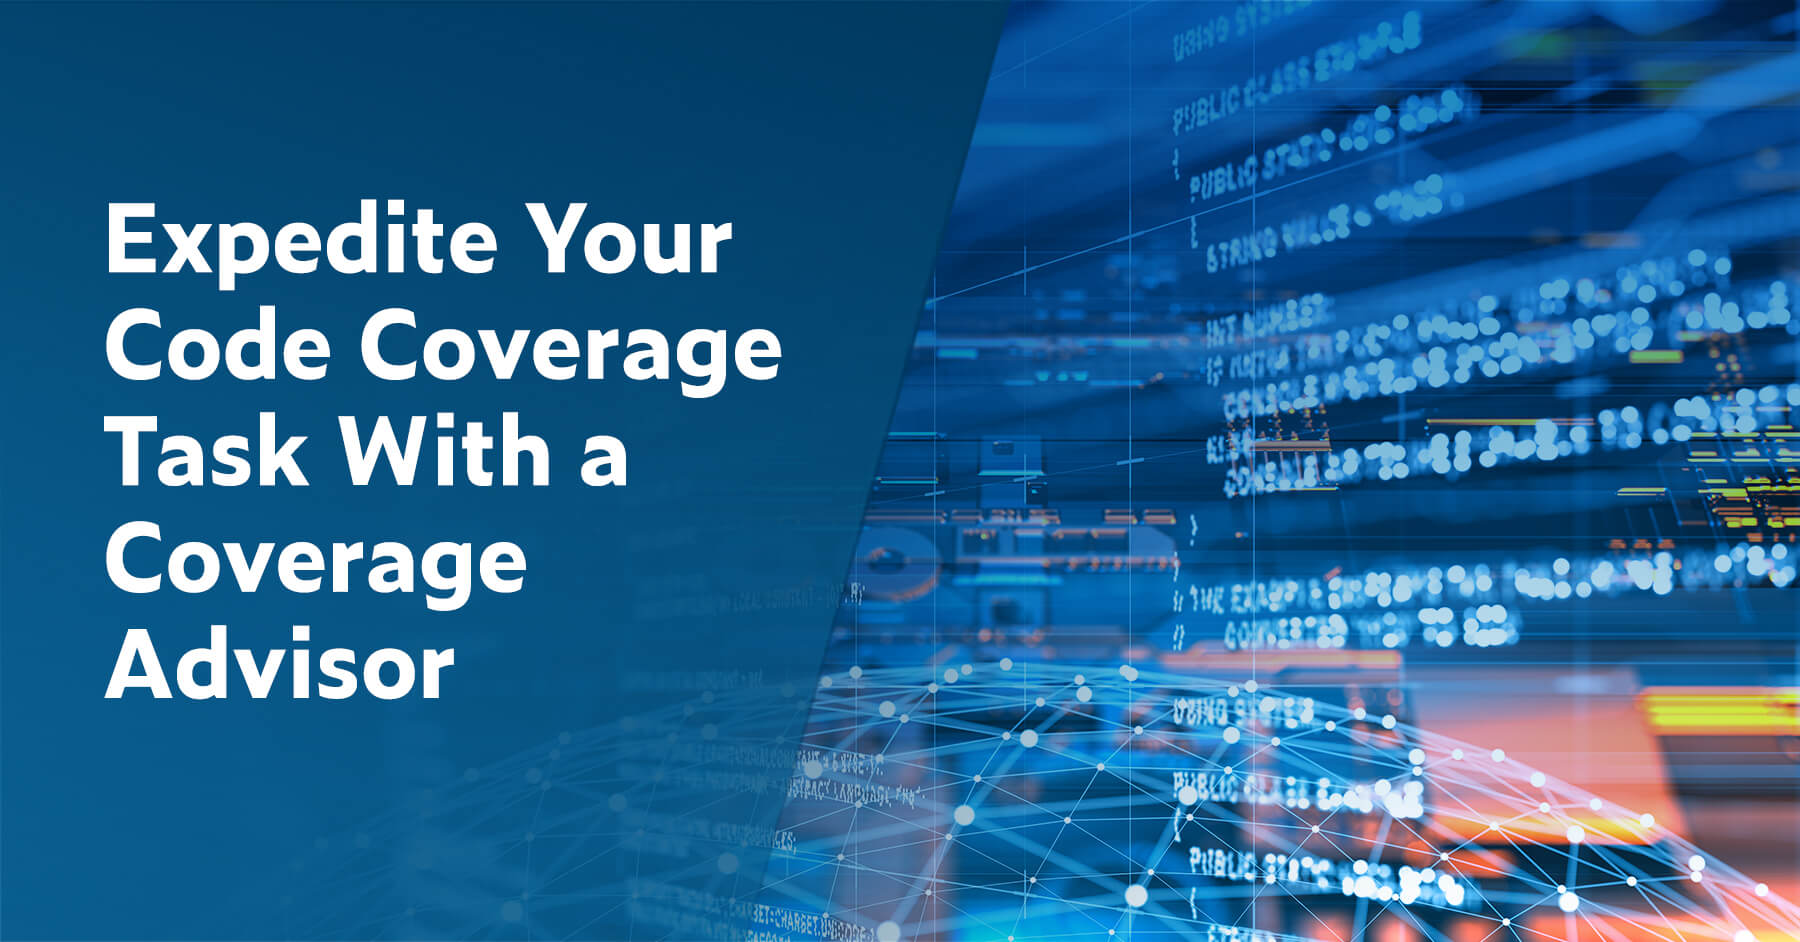 Expedite Your Code Coverage Task With a Coverage Advisor